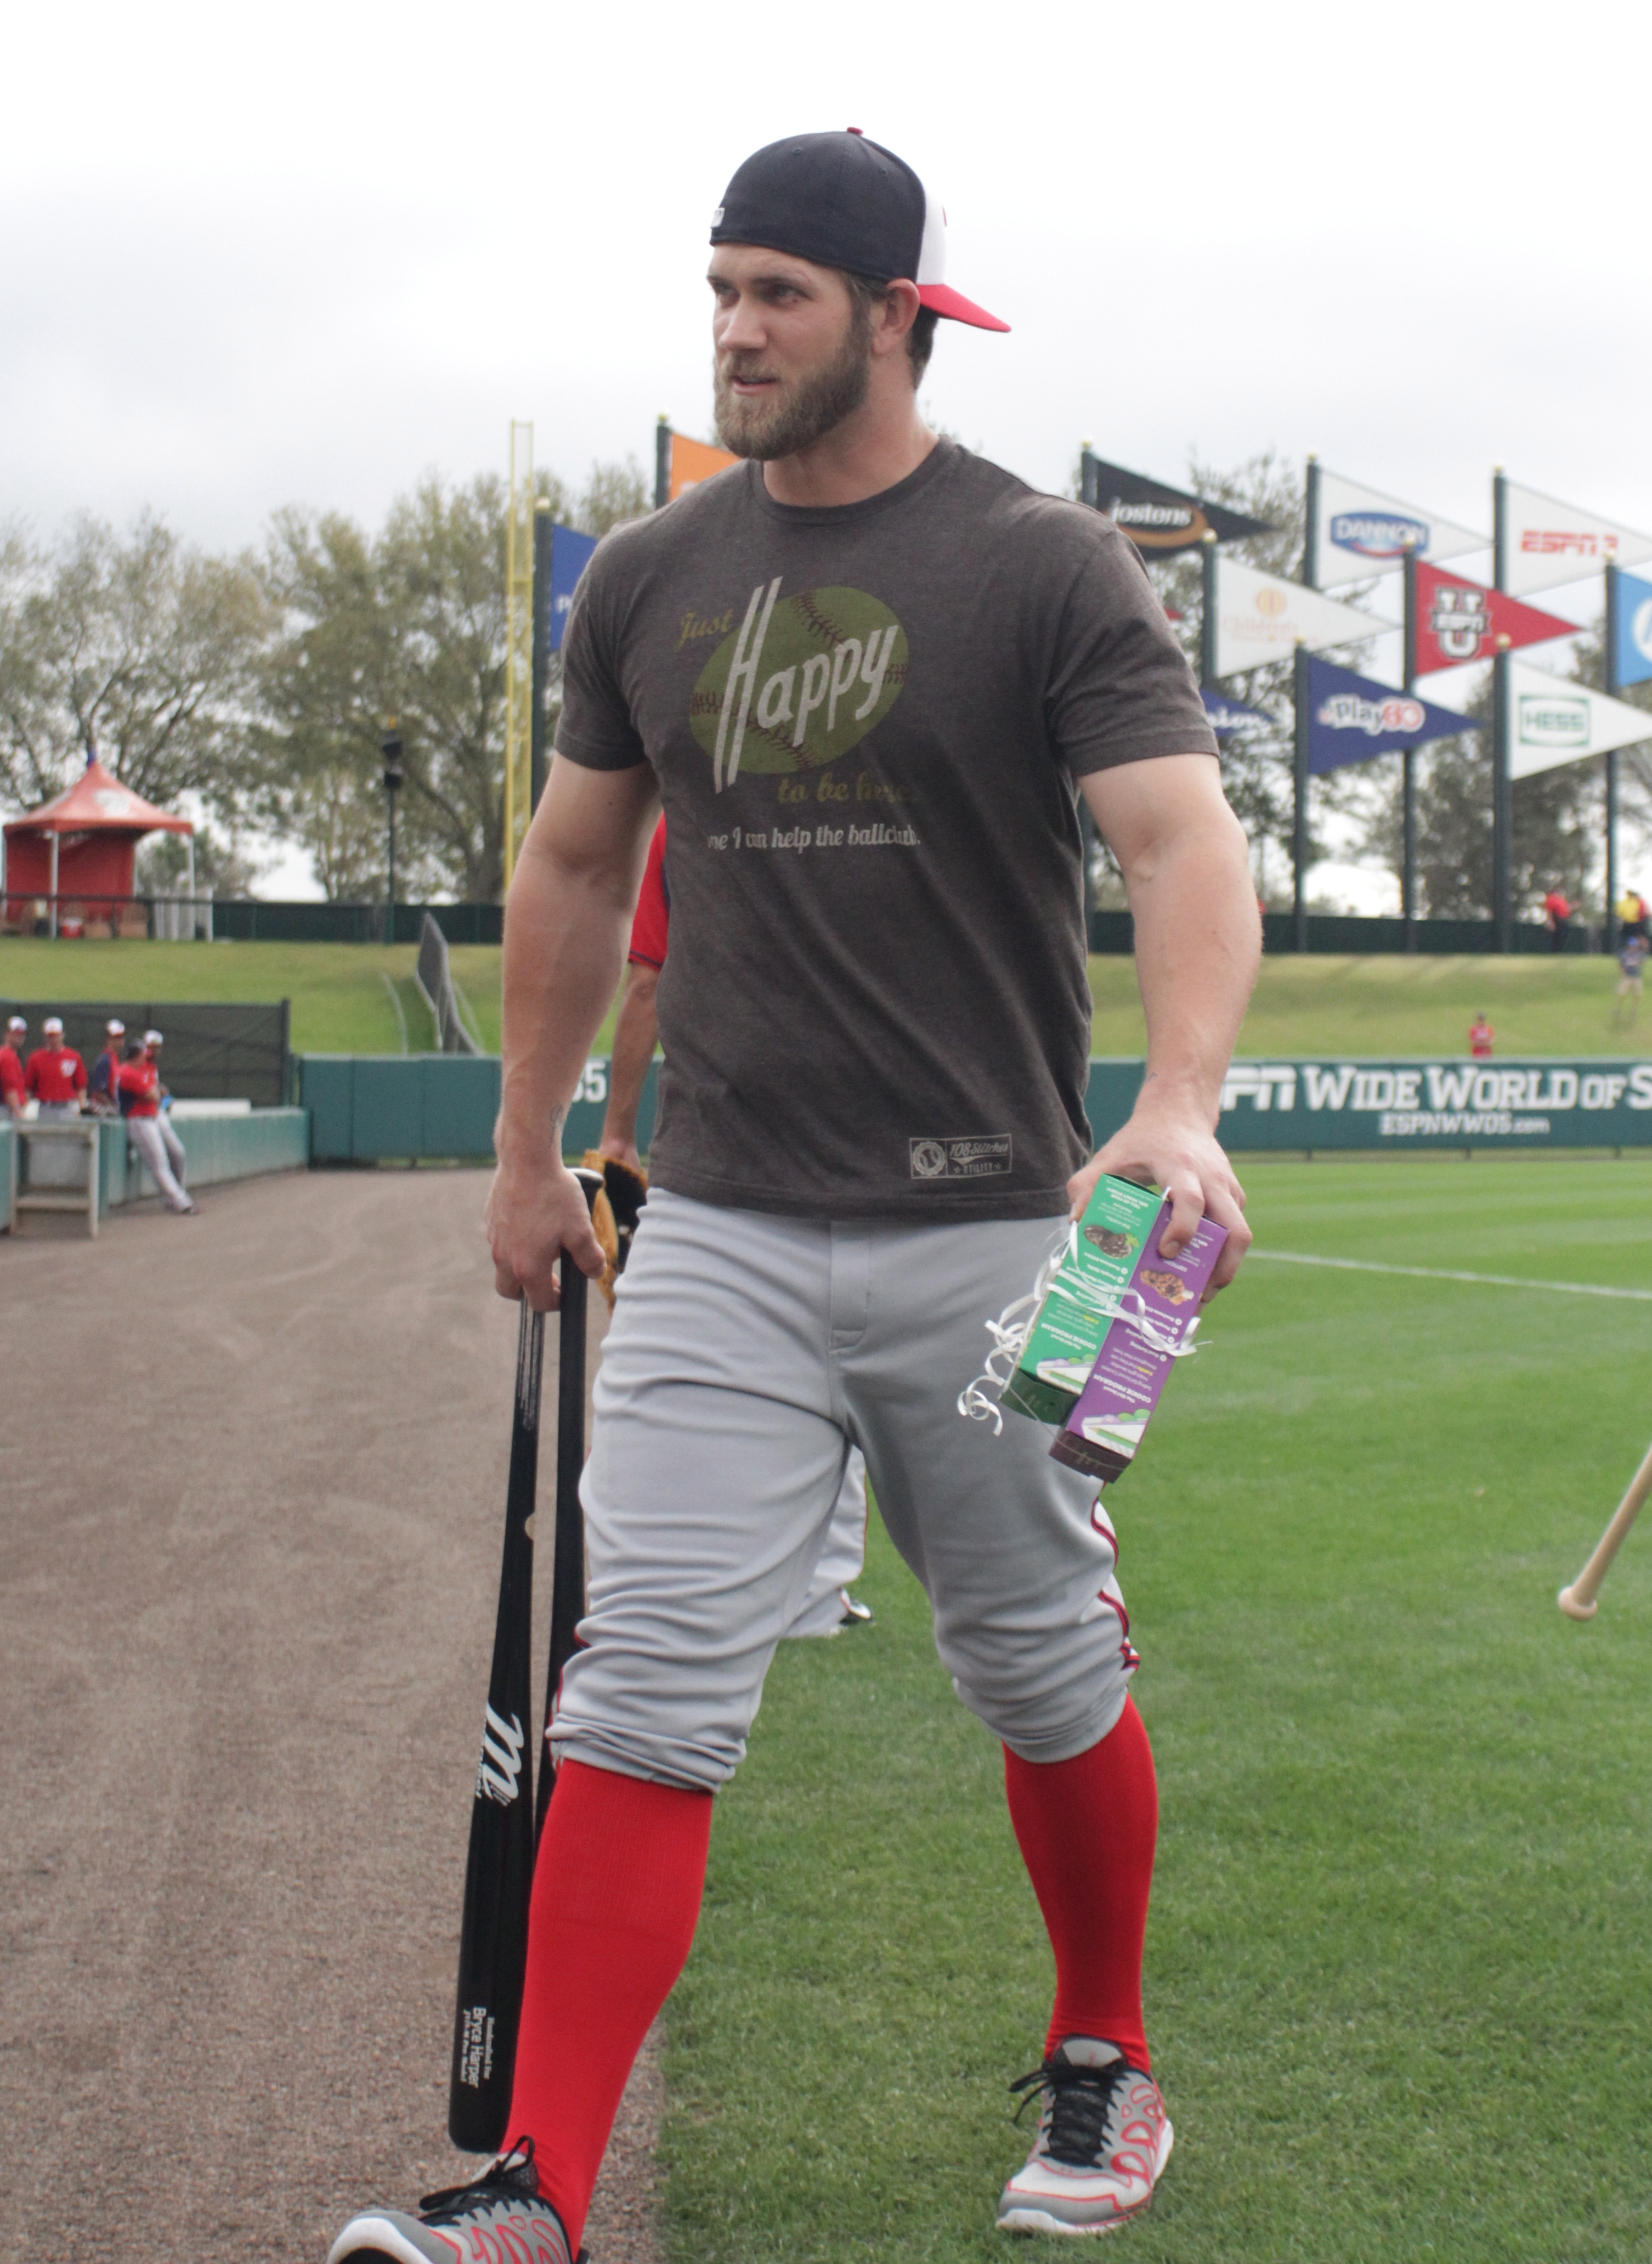 Bryce Harper had said he'd worked out hard in the offseason, often tweeting photos of himself hitting the weights. But until this photo surfaced of Harper, prior to a Nats spring training game against the Braves on Tuesday, March 4, 2014, the mass he'd packed on perhaps hadn't been so evident. (Photos by Sheahin/Sousa as special to WJFK)